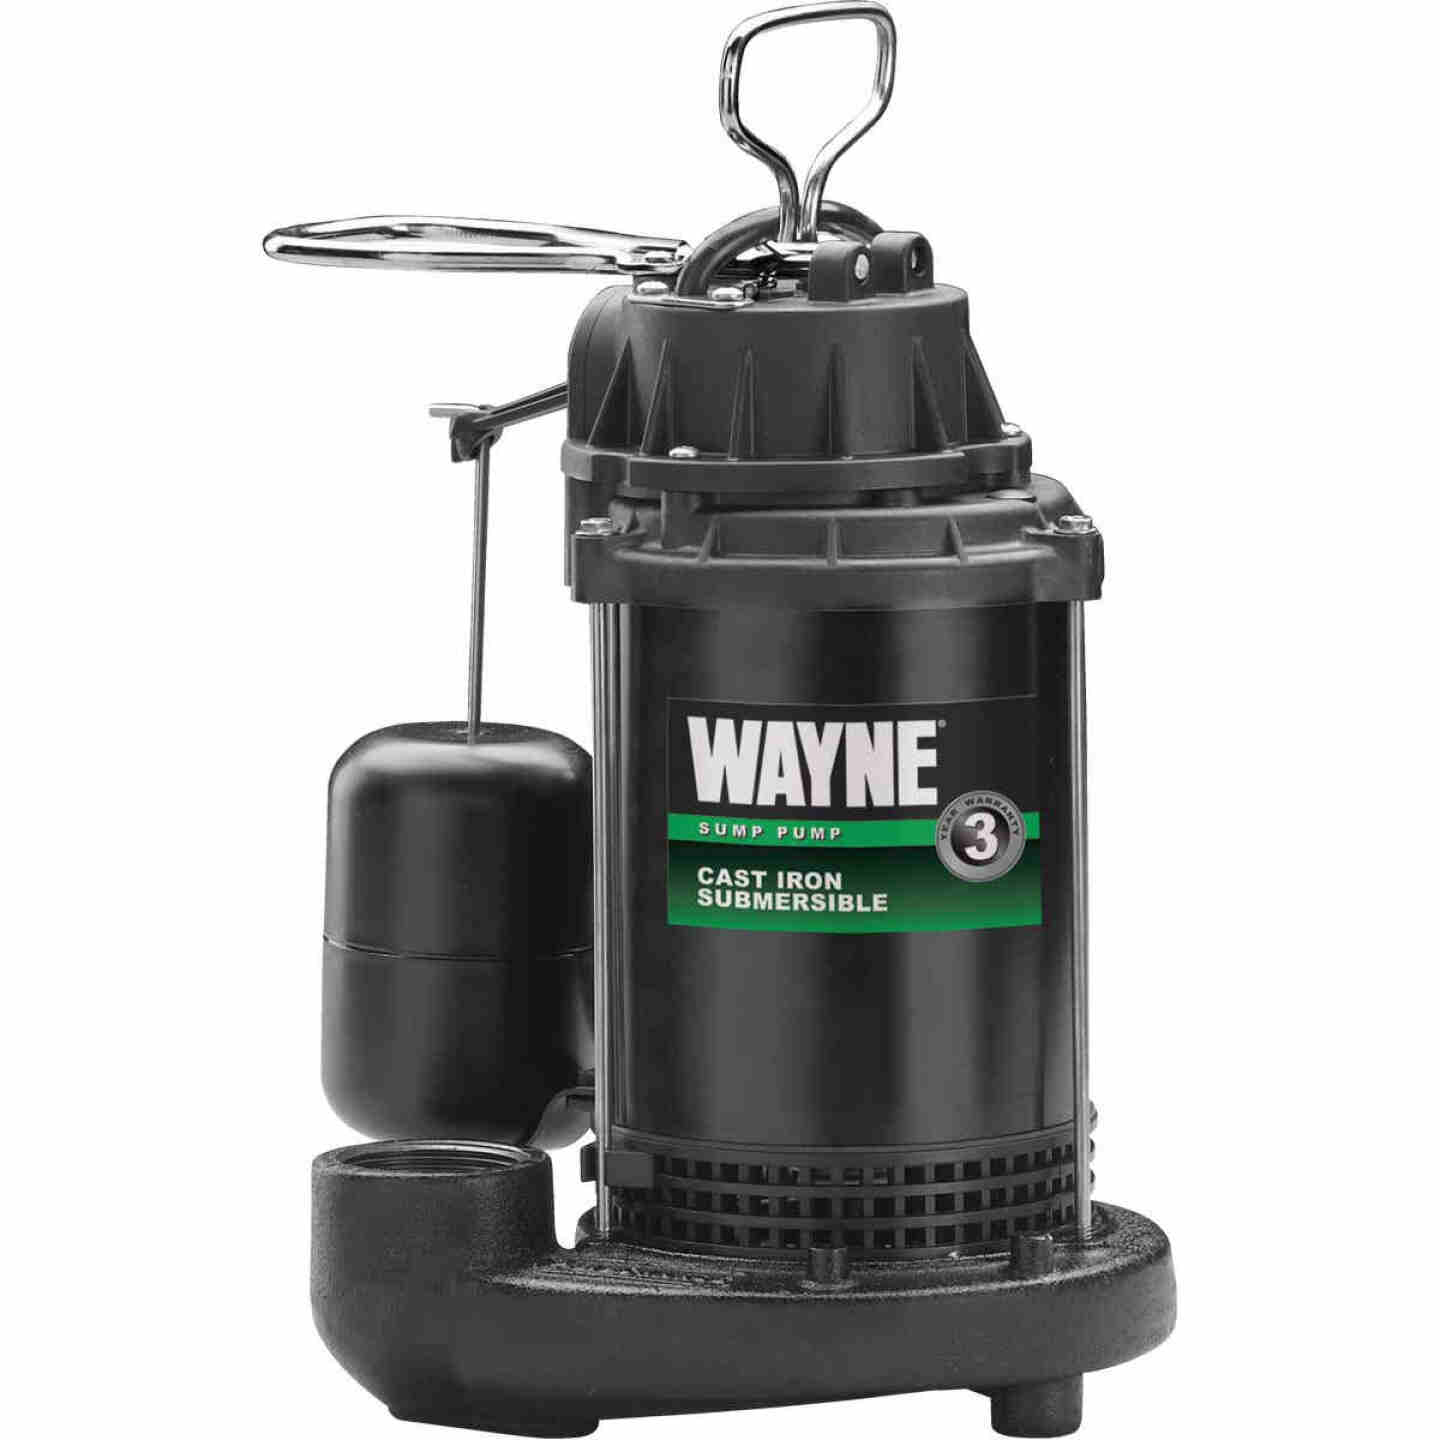 Wayne Water System 1/2 HP 115V Cast-Iron Submersible Sump Pump Image 1